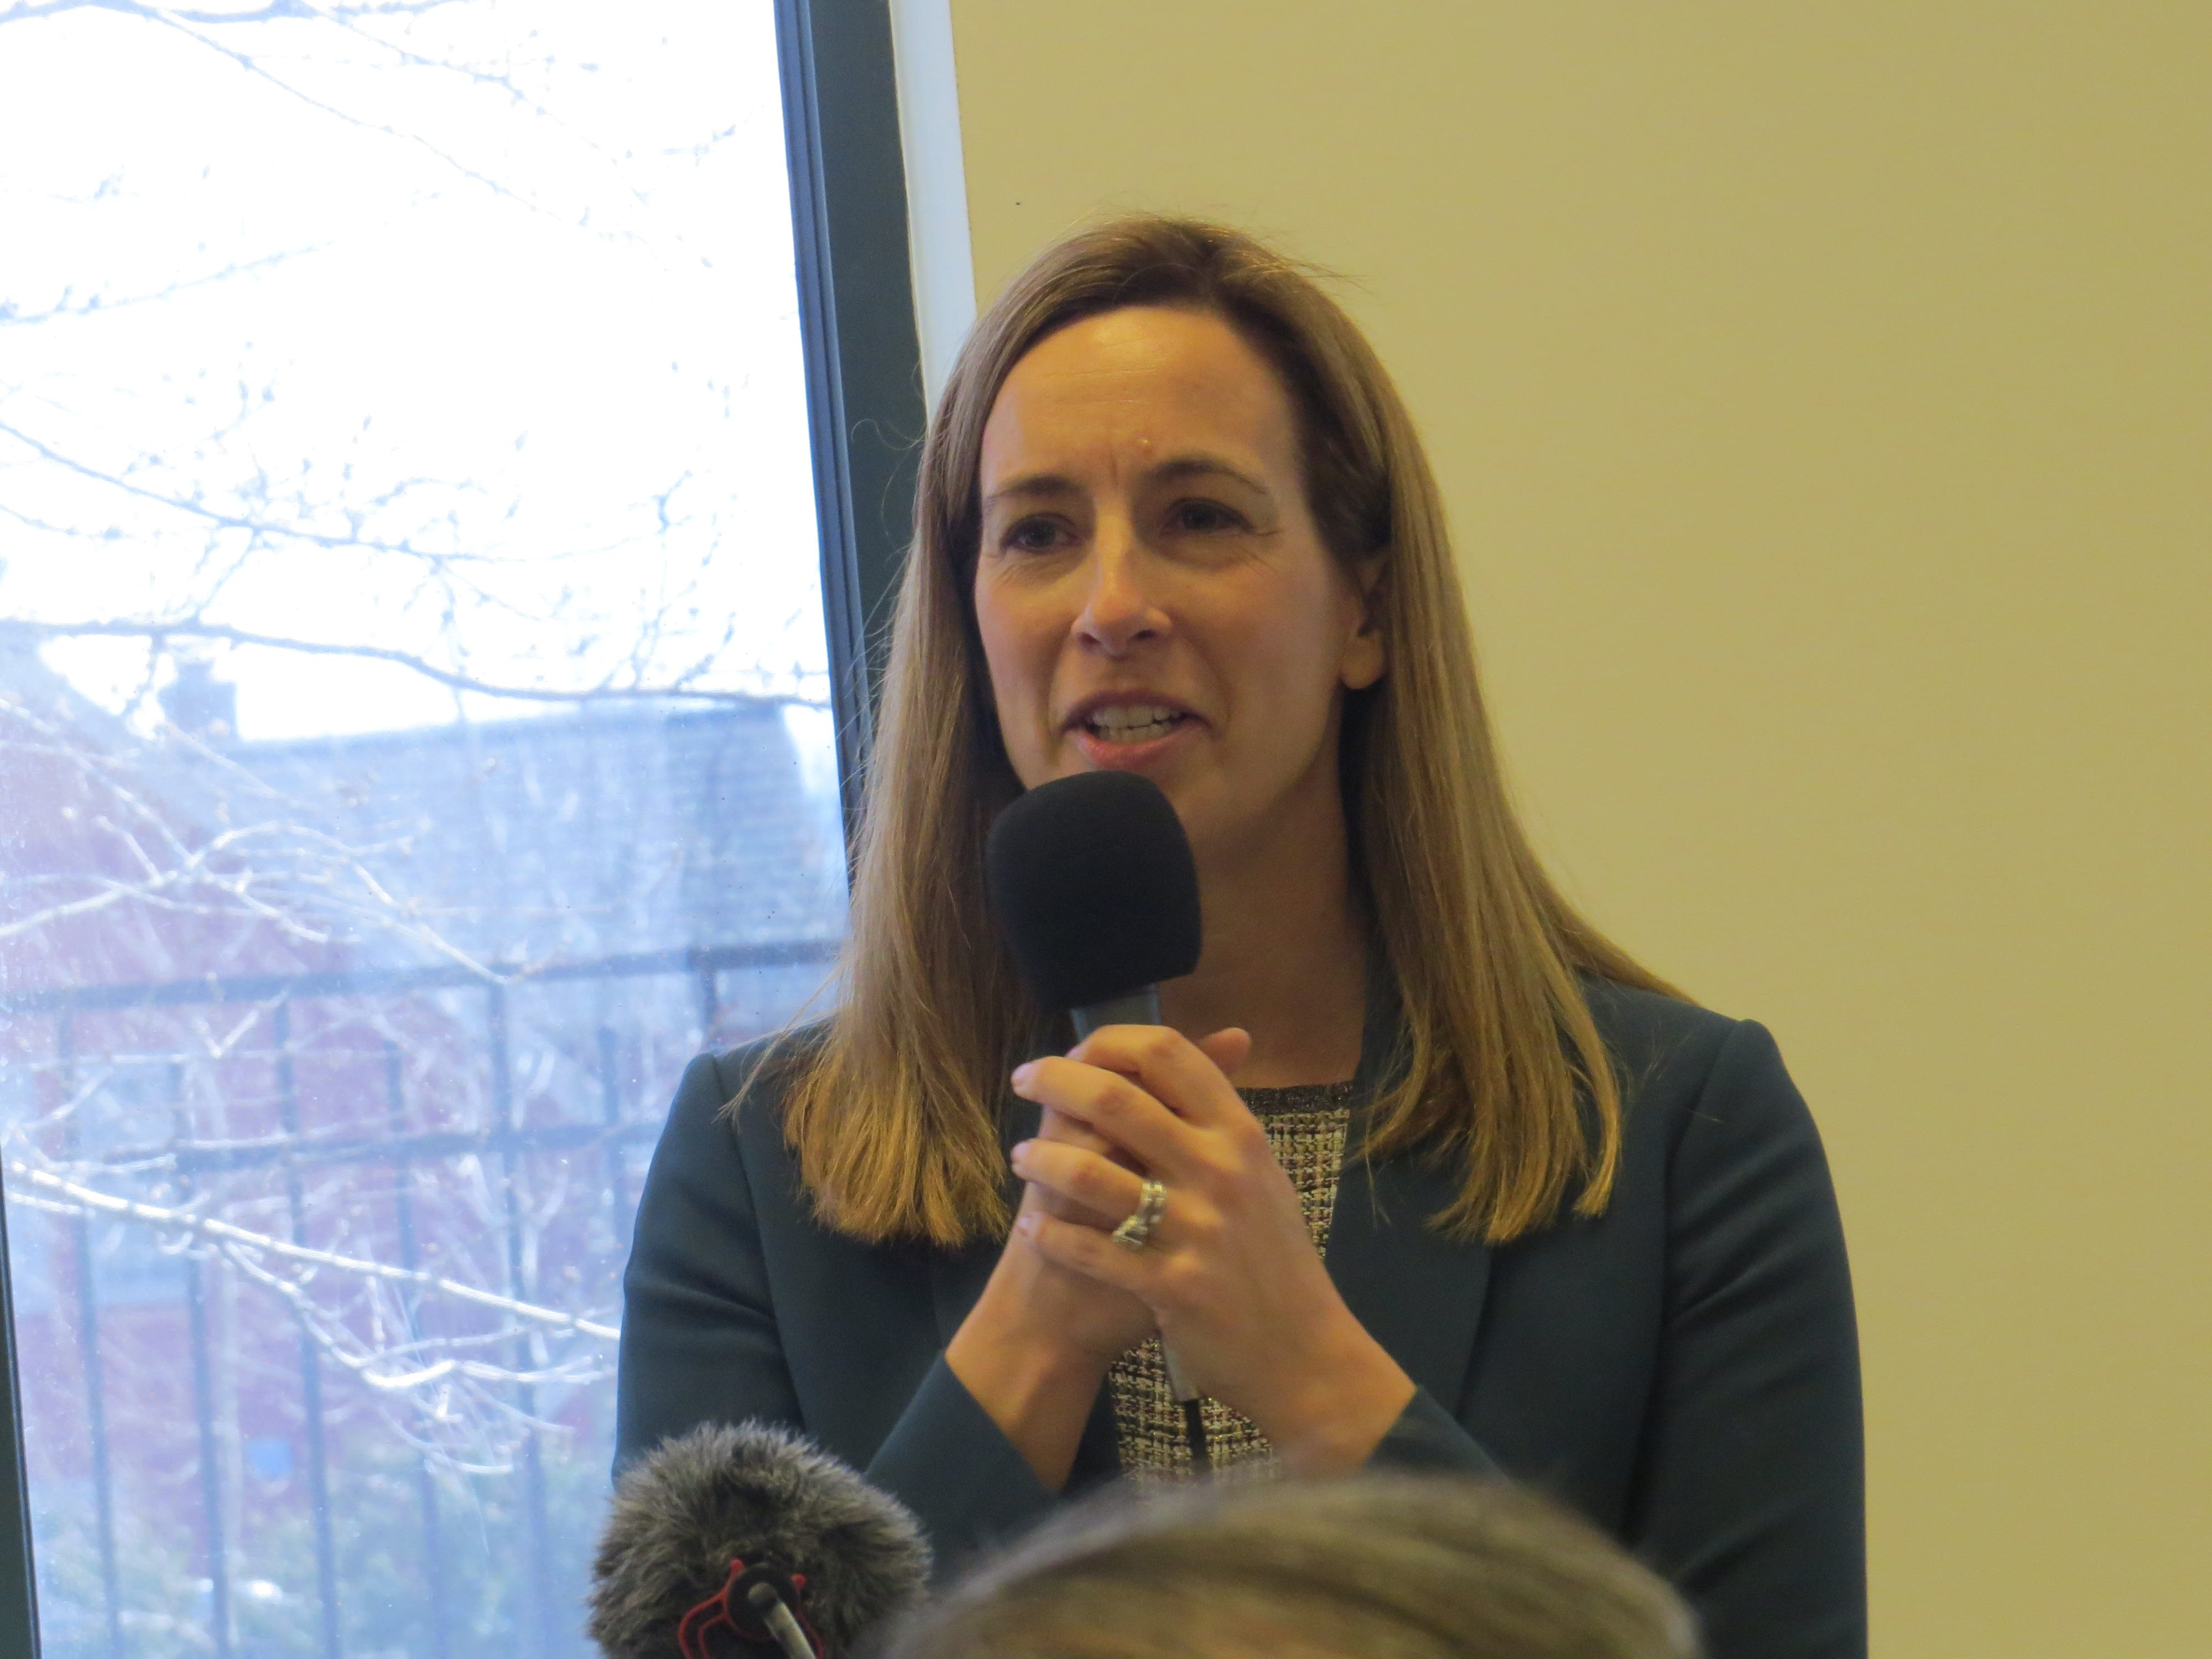 Rep. Mikie Sherrill speaks at a prayer vigil and march in remembrance of victims of recent mosque attacks in New Zealand drew hundreds to the Jam-E-Masjid Islamic Center in Boonton March 17, 2019.